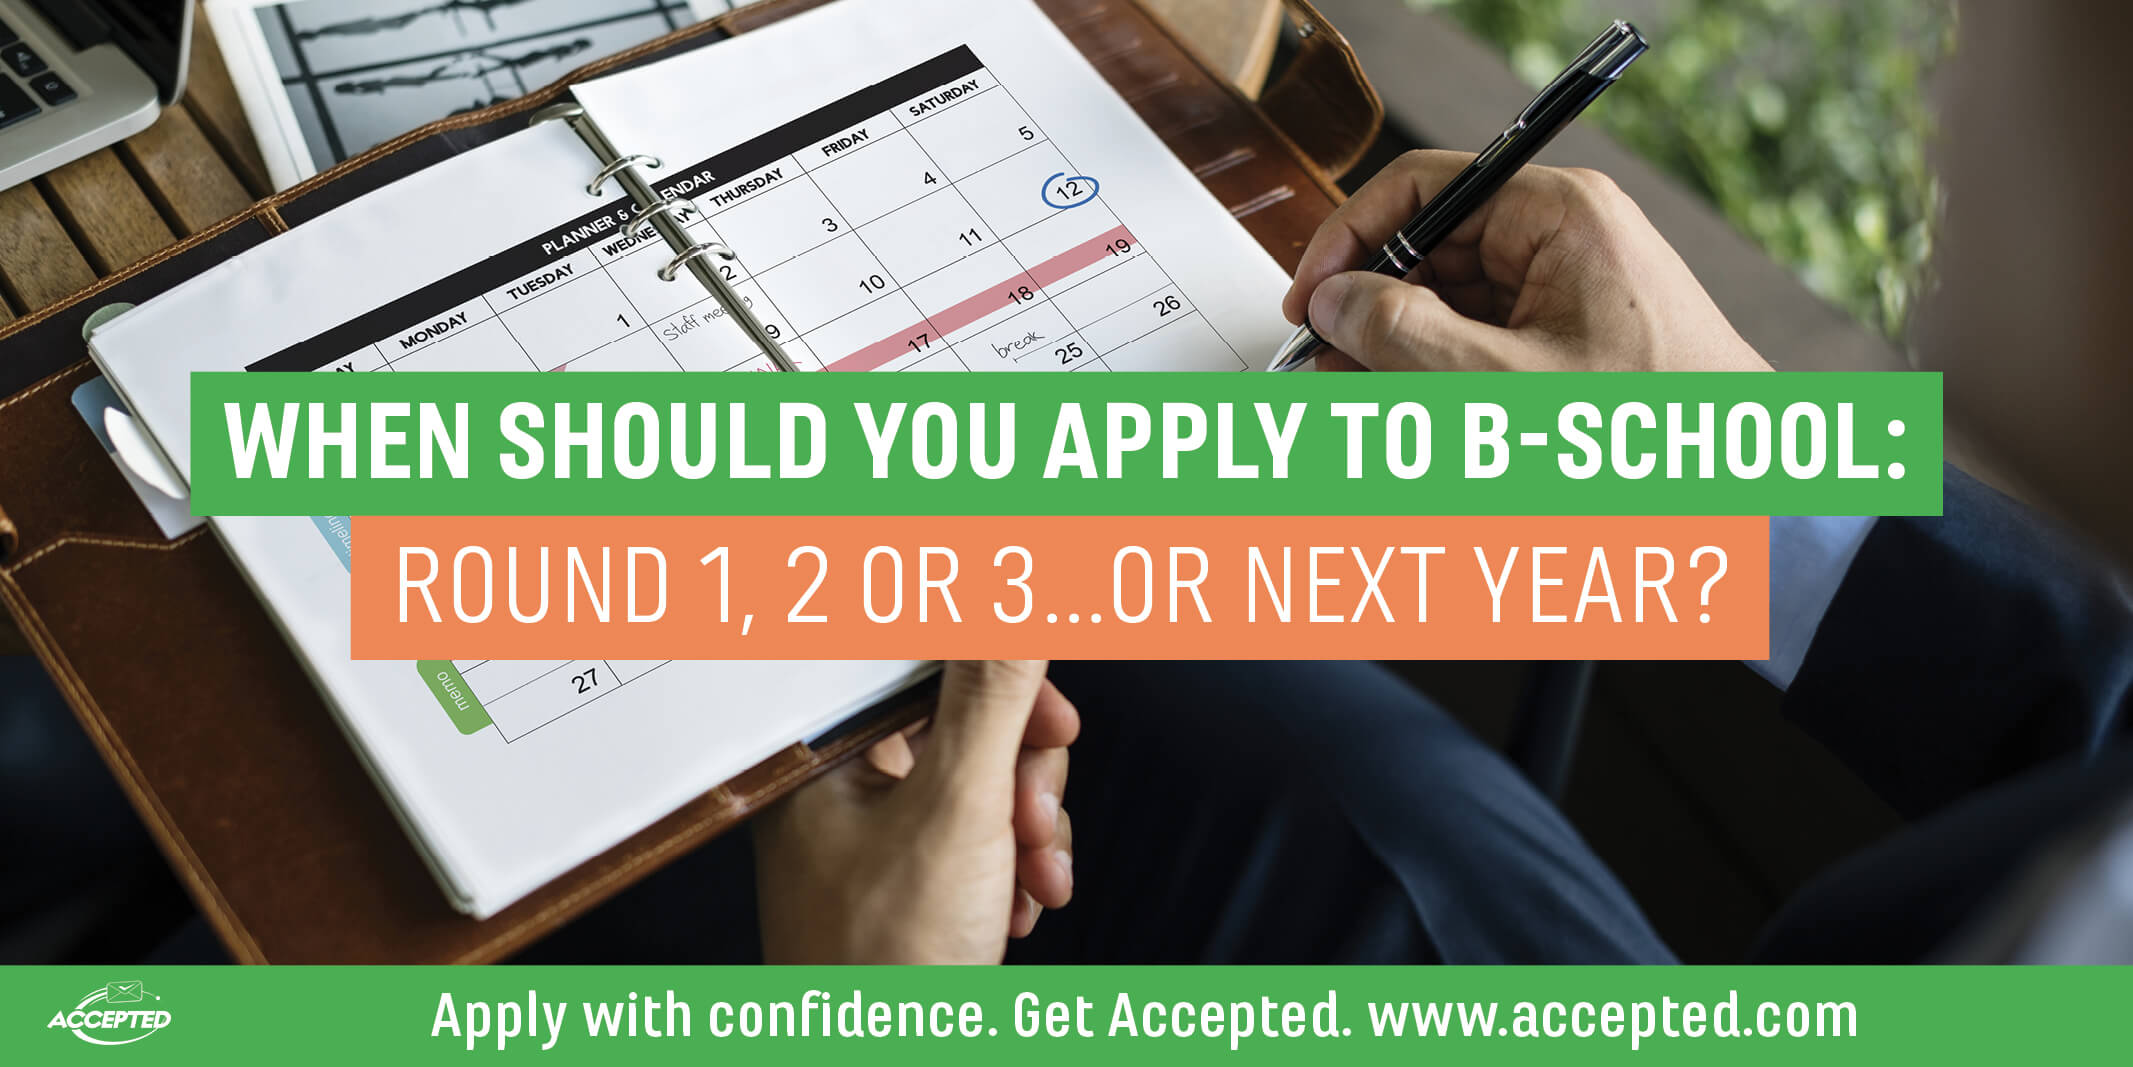 Which round should I apply to b-school?